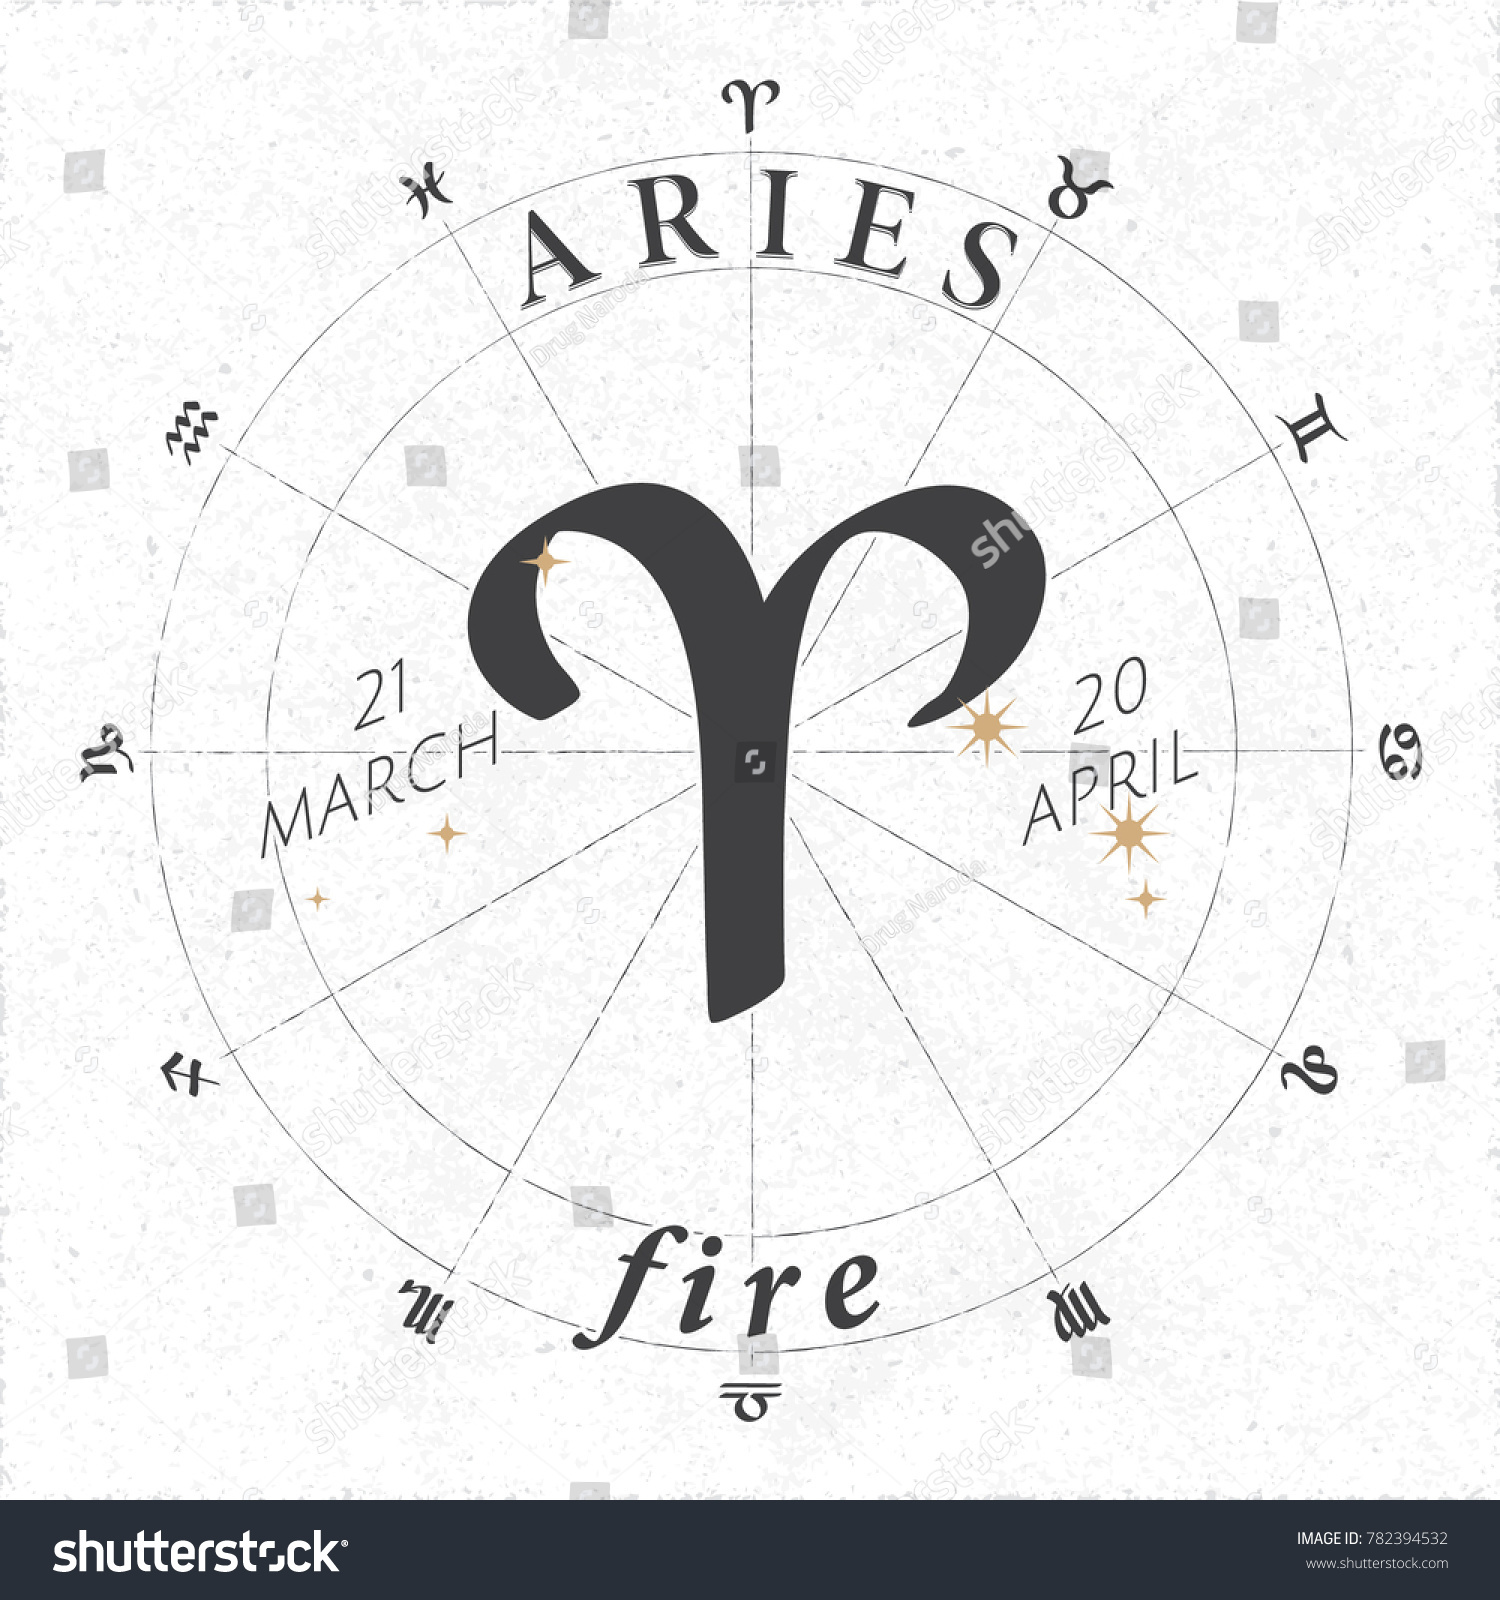 Zodiac sign aries logo fire lettering stock vector 782394532 zodiac sign aries logo and fire lettering with aries constellation stars and dates in zodiac circle buycottarizona